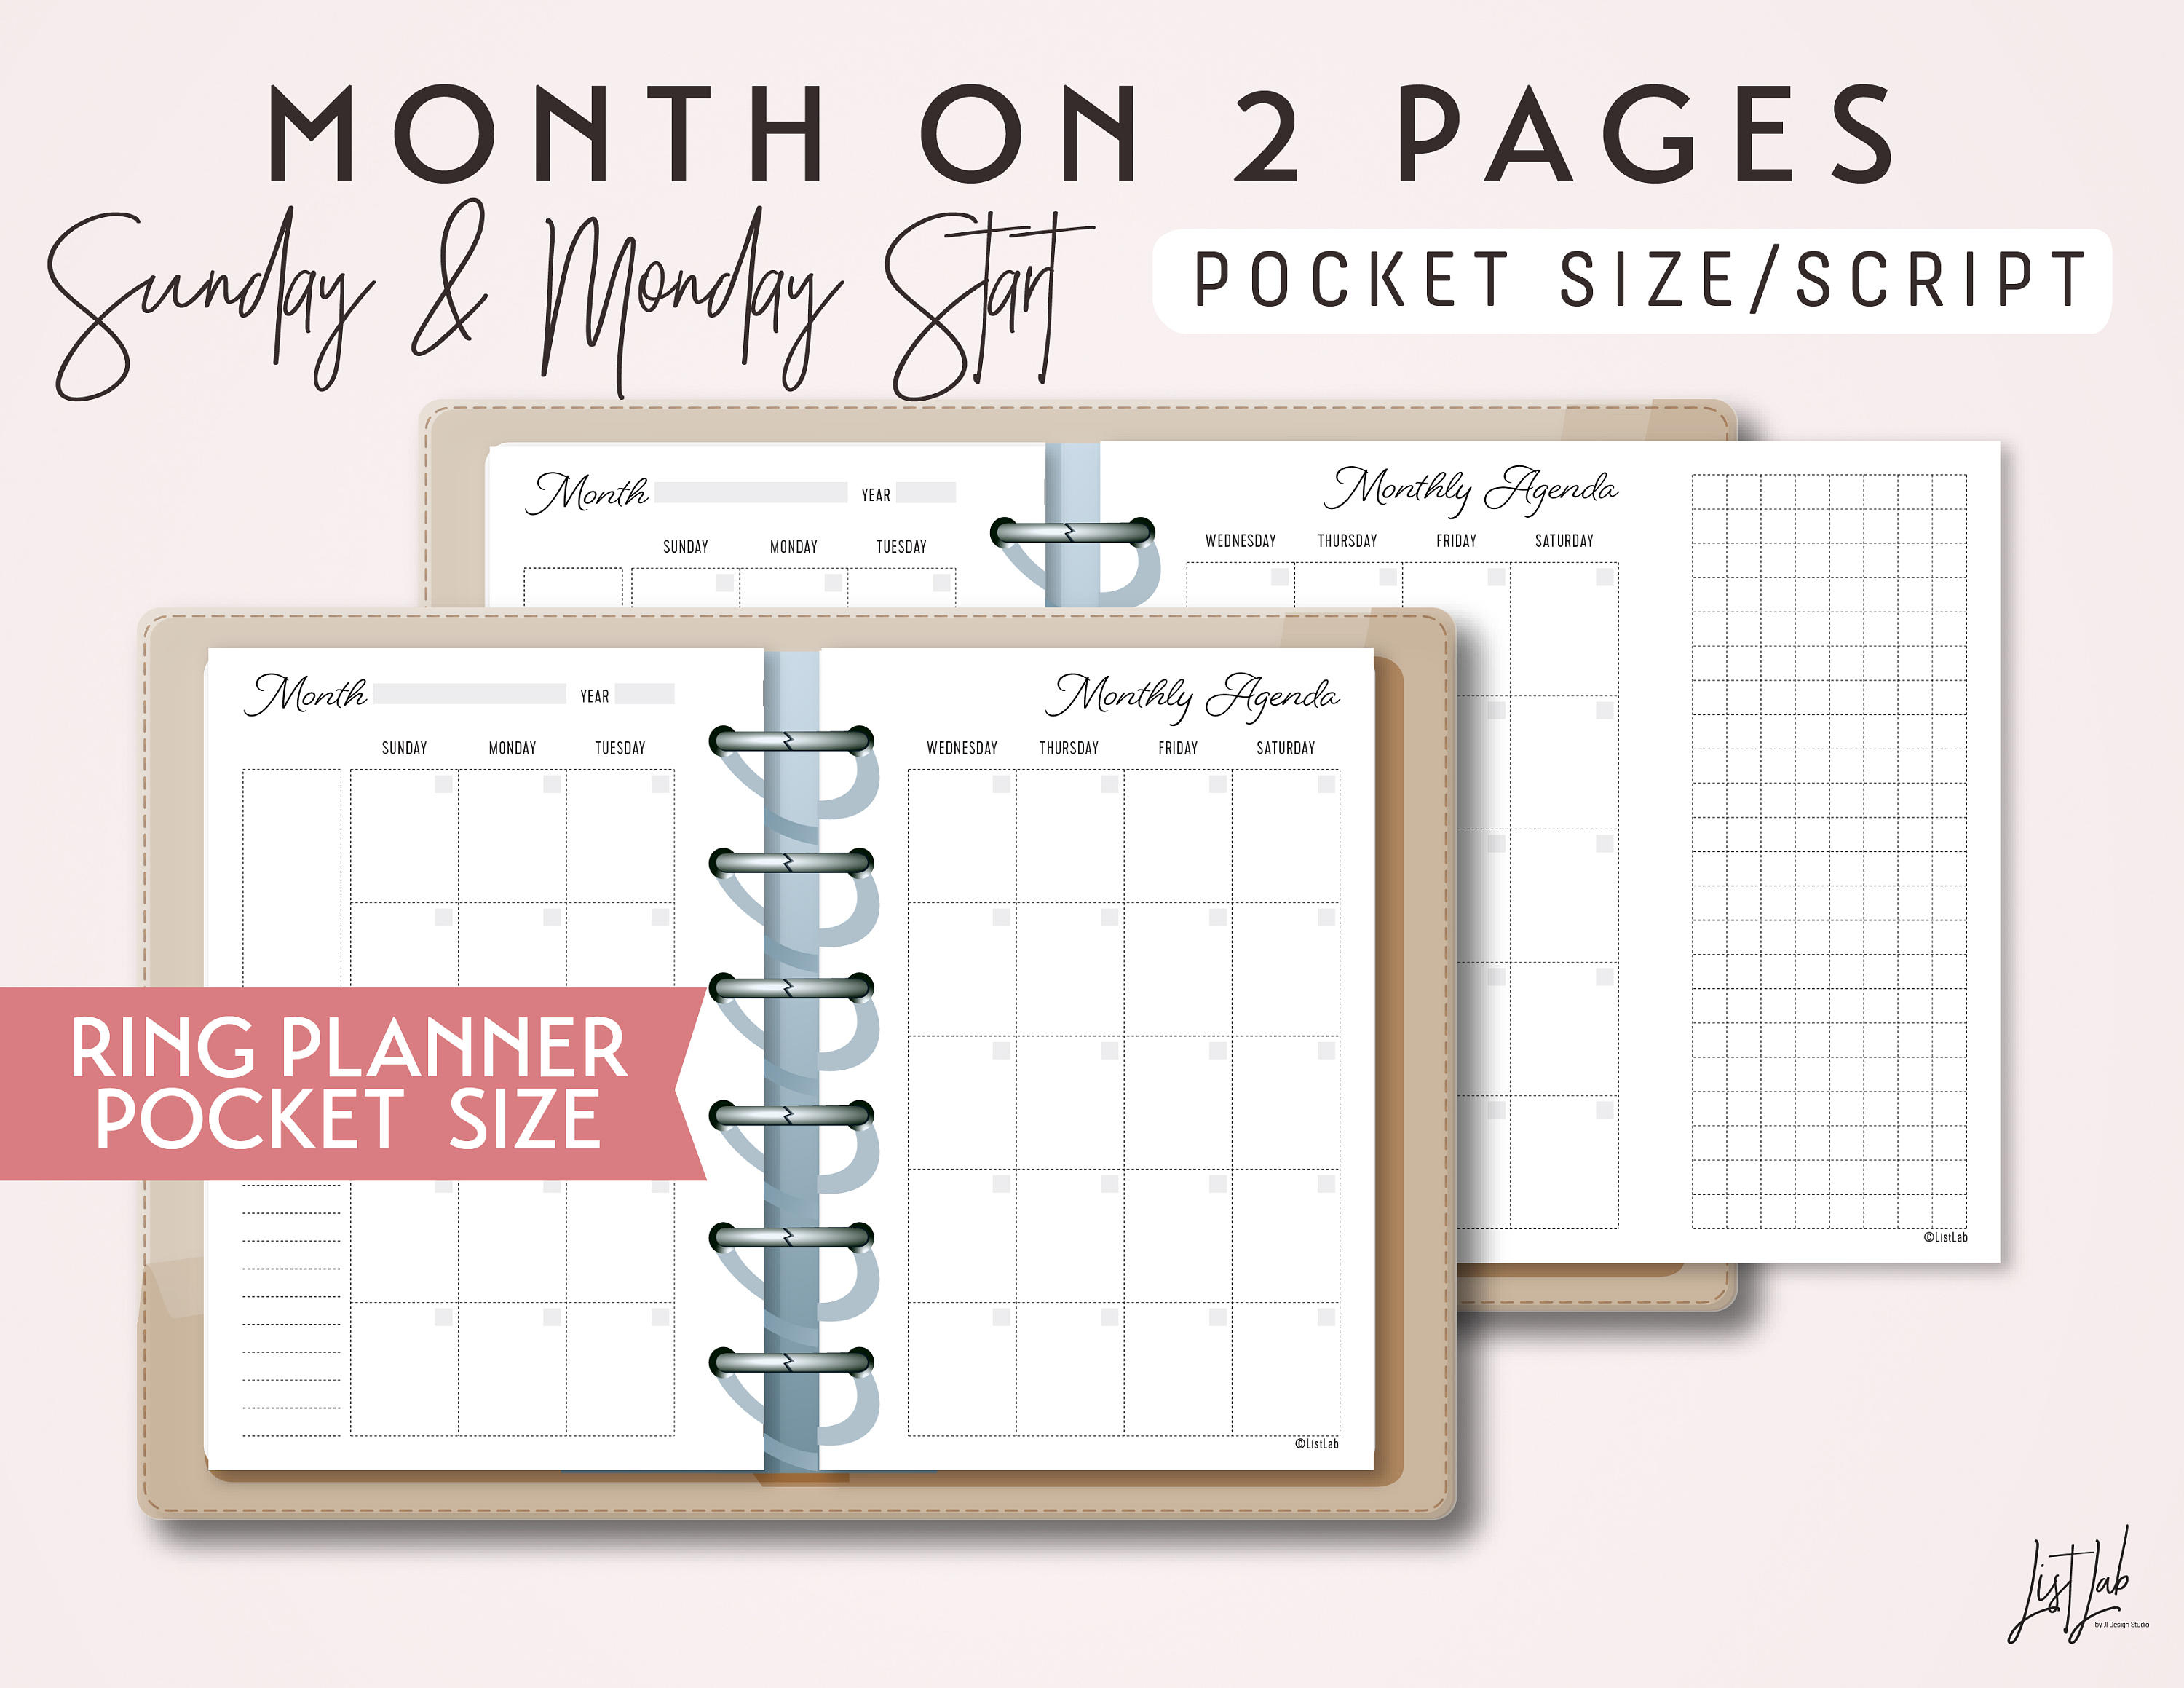 Pocket Size Month On 2 Pages Calendar  Printable Ring Planner Insert   Script Theme for Pocket Size Calendar Printable